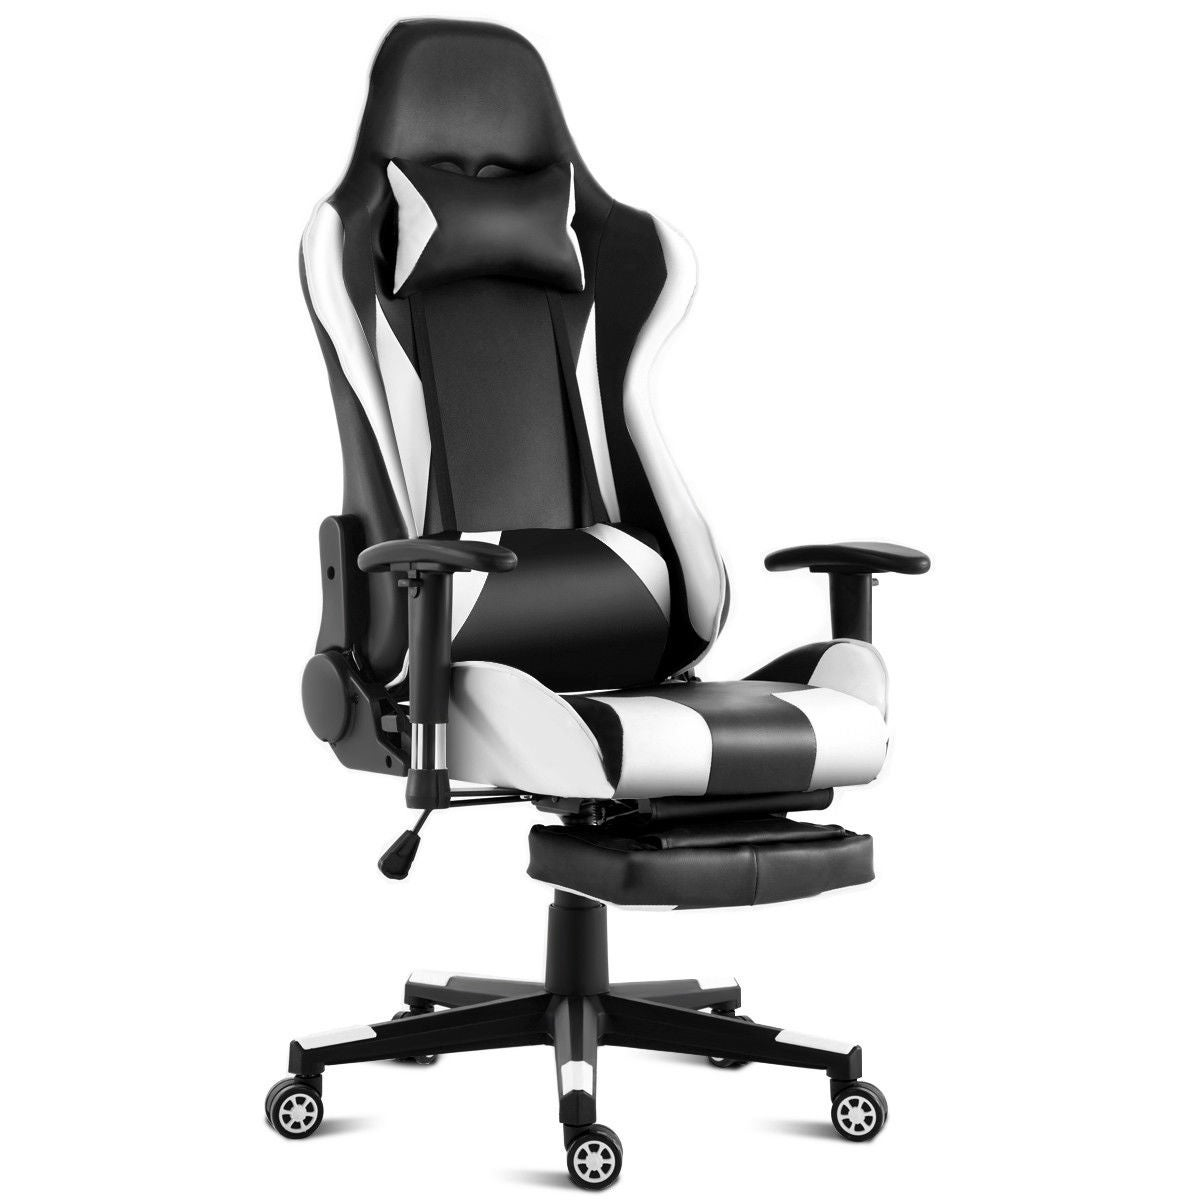 Costway Gaming Chair High Back Racing Recliner Office Chair W Lumbar Support Footrest White And Black